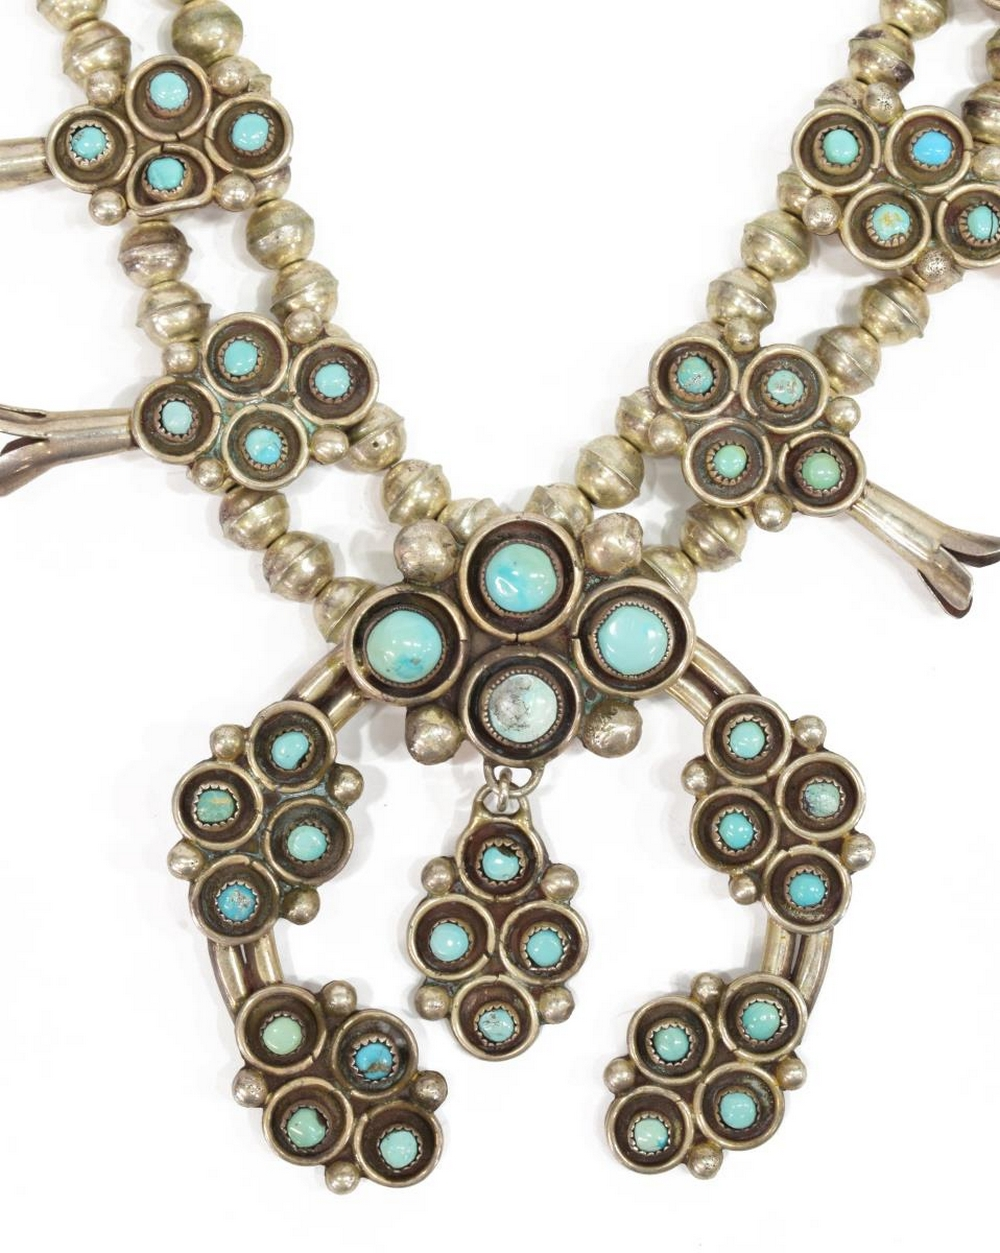 Lot 469: NATIVE AMERICAN TURQUOISE SQUASH BLOSSOM NECKLACE